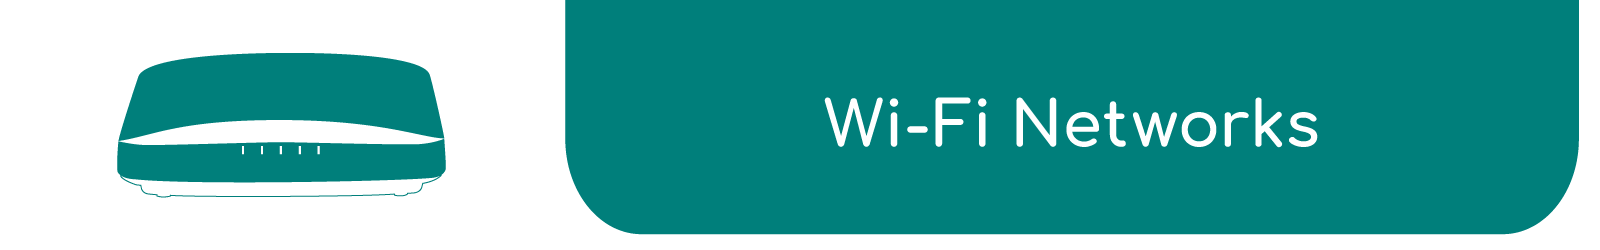 Wi-Fi Networks - Electronic Communication Services